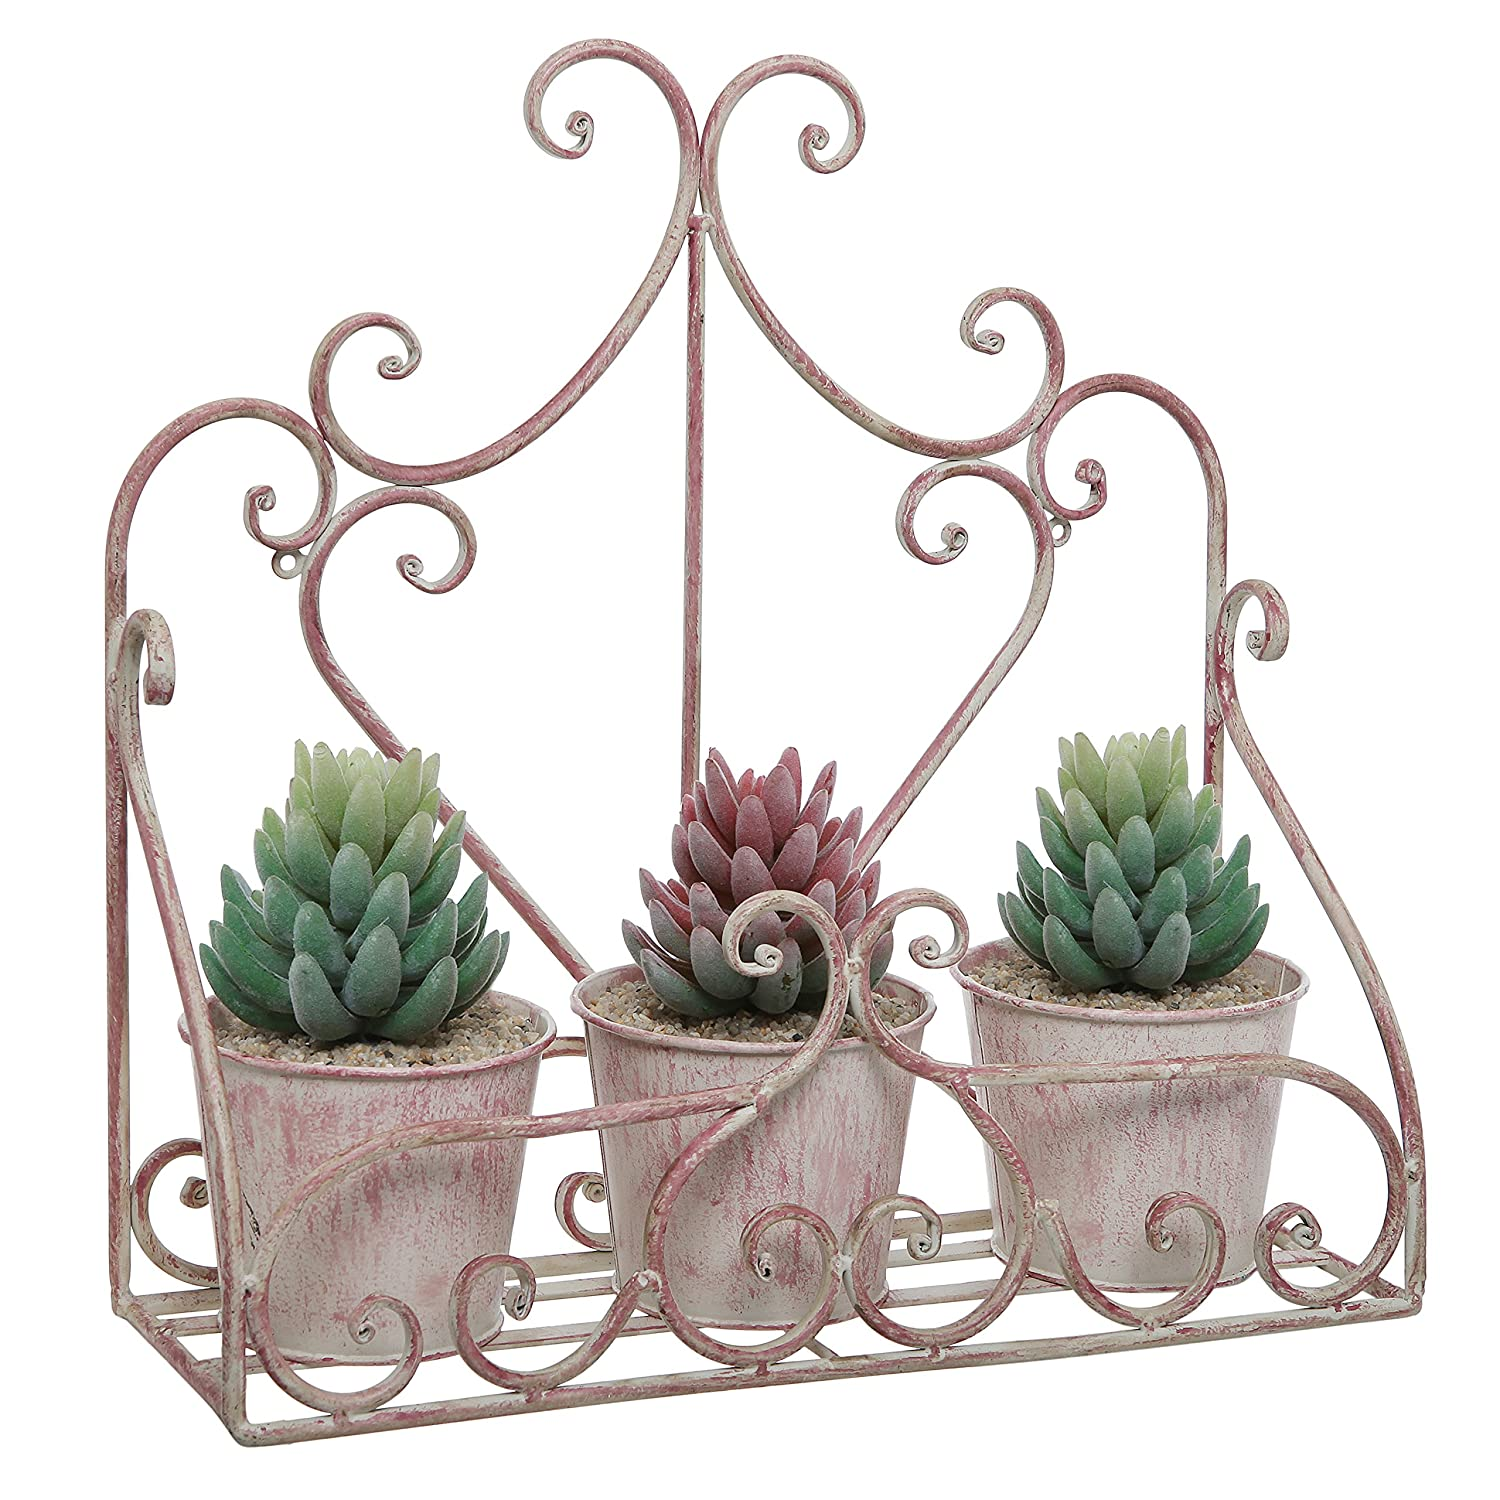 Large Wall Mounted Planters Beautiful Metal Planters For Wall Decoration Strong And